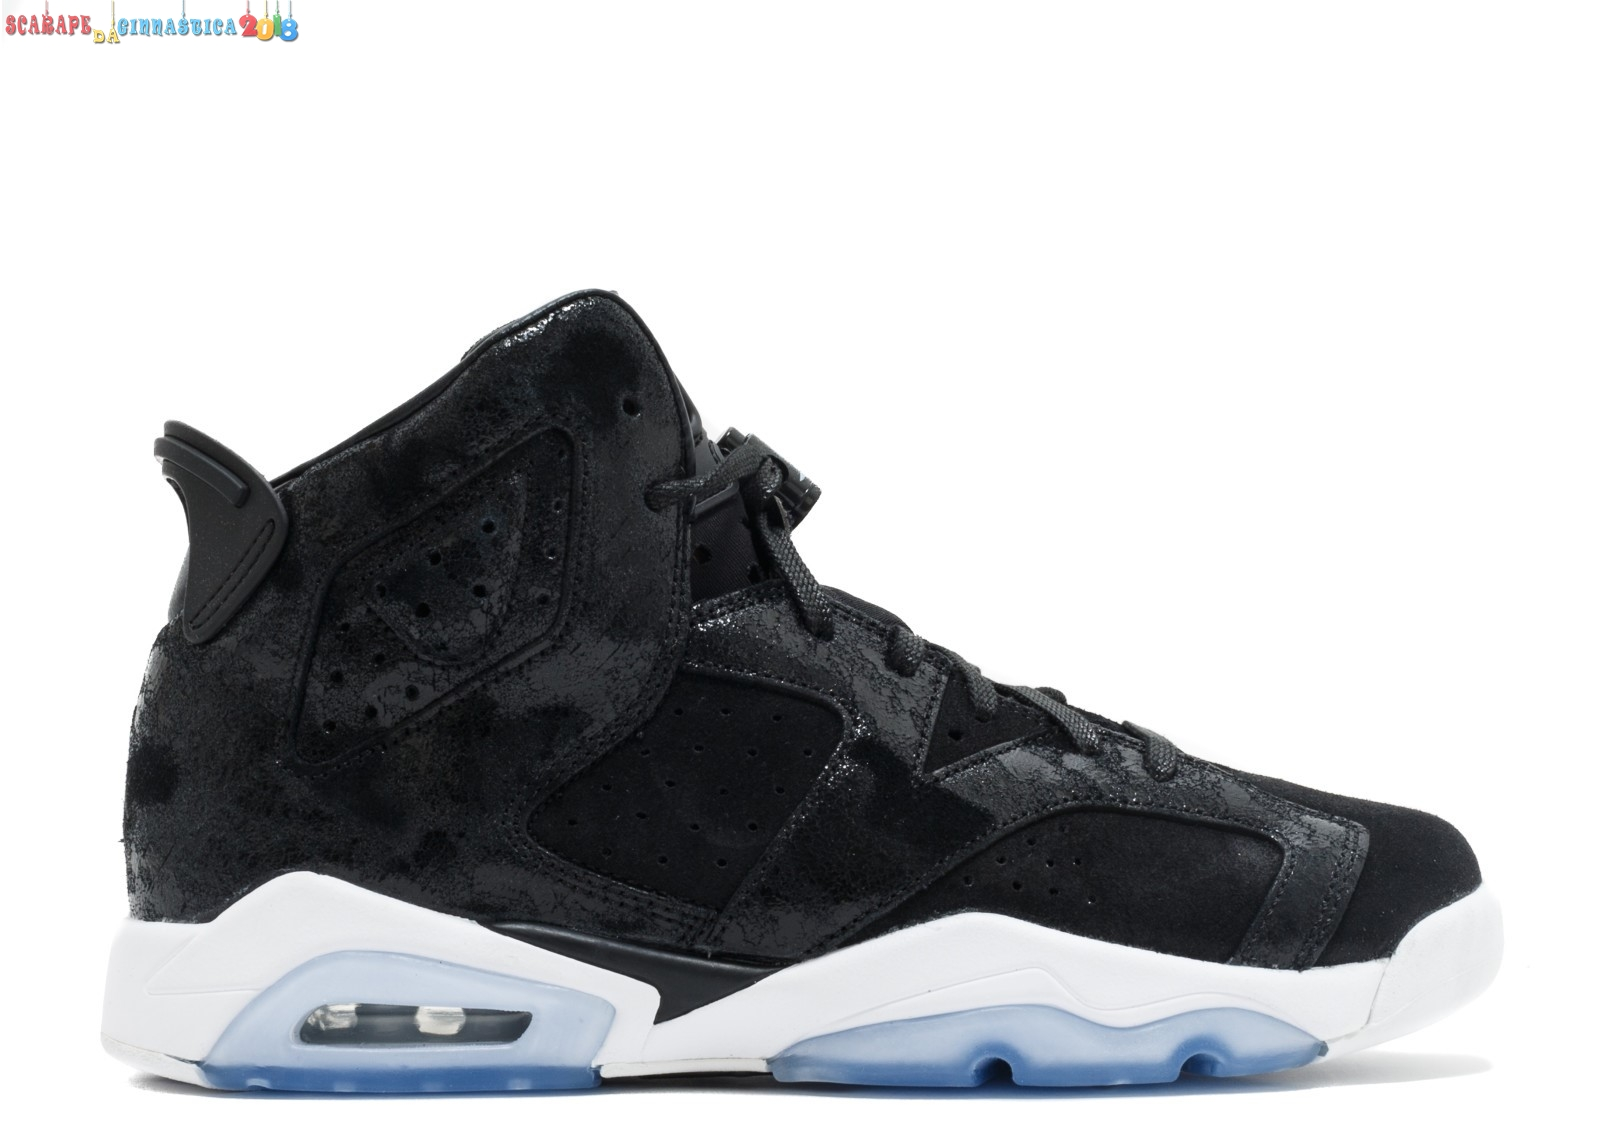 "Buy Air Jordan 6 Retro Prem Hc Gg (Gs) ""Heiress"" Nero Bianca (881430-029) Replica"